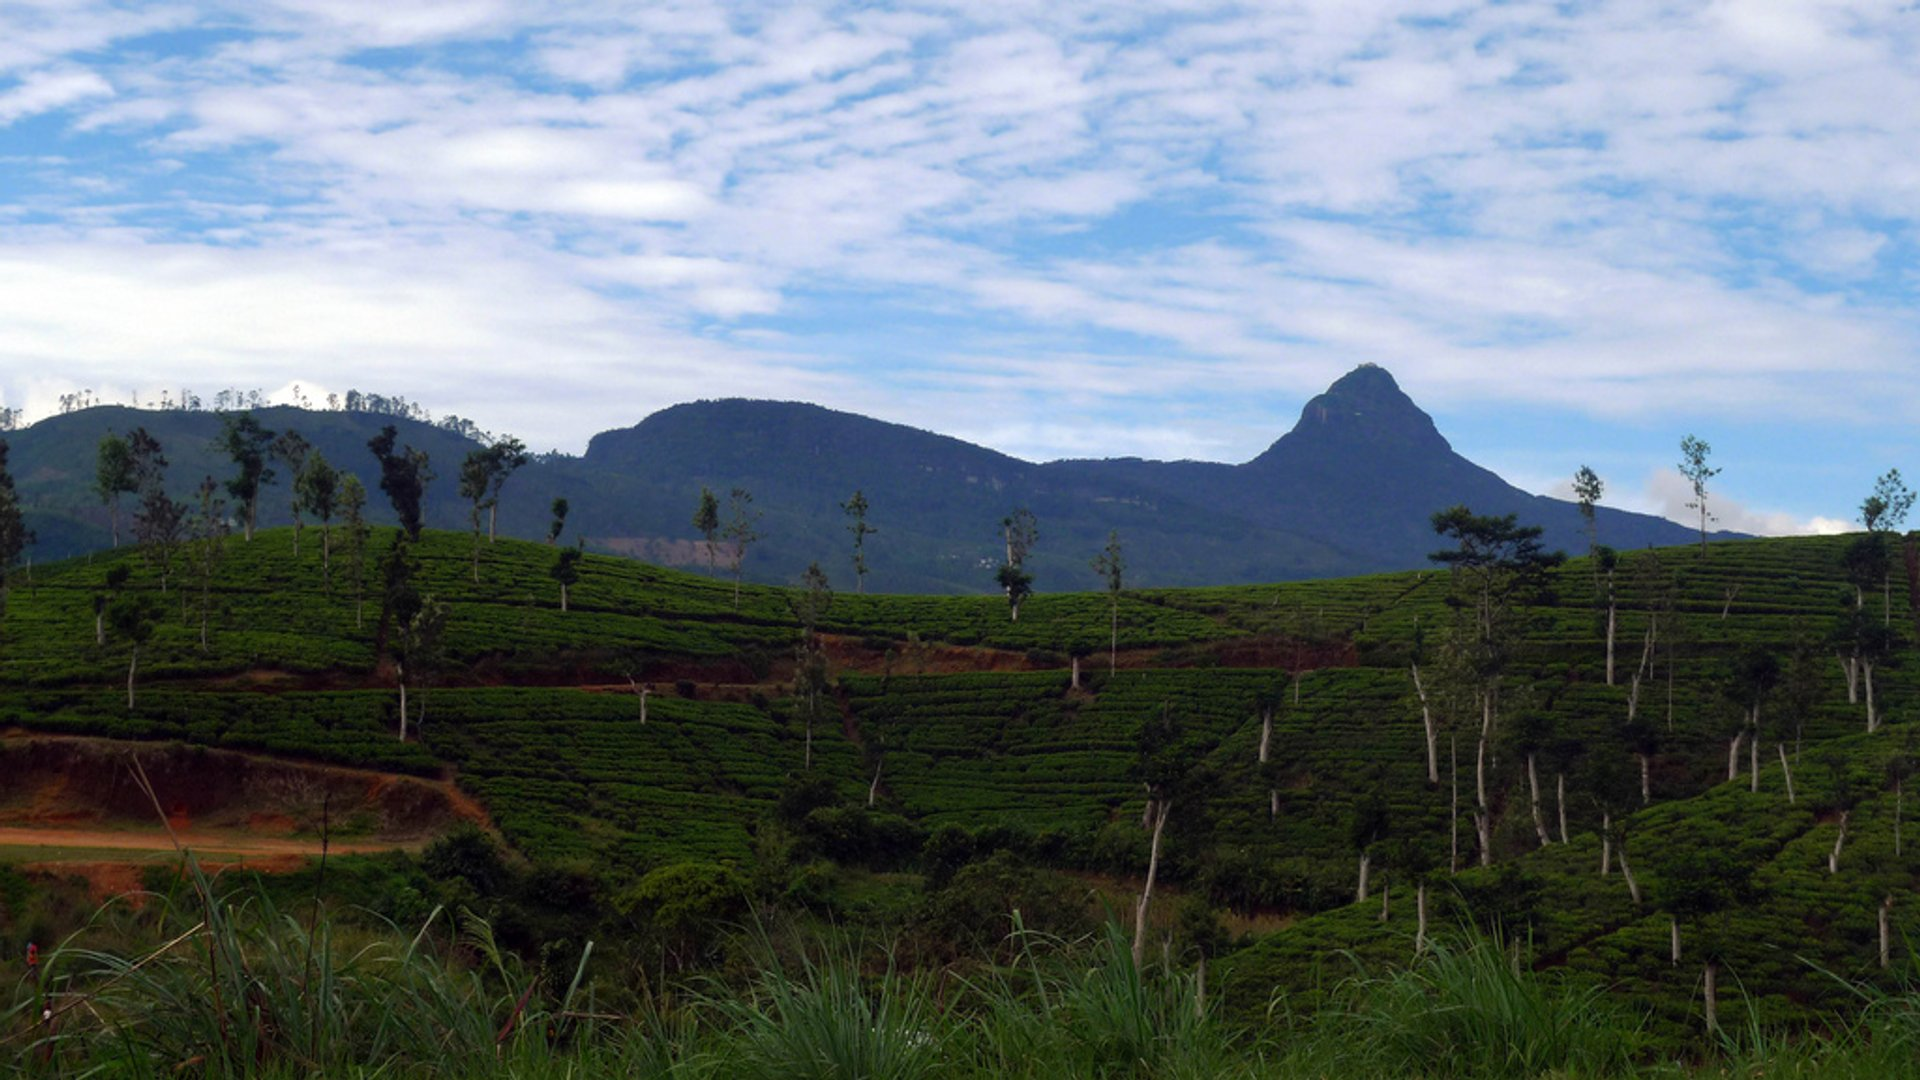 Adam's Peak Pilgrimage in Sri Lanka - Best Season 2020